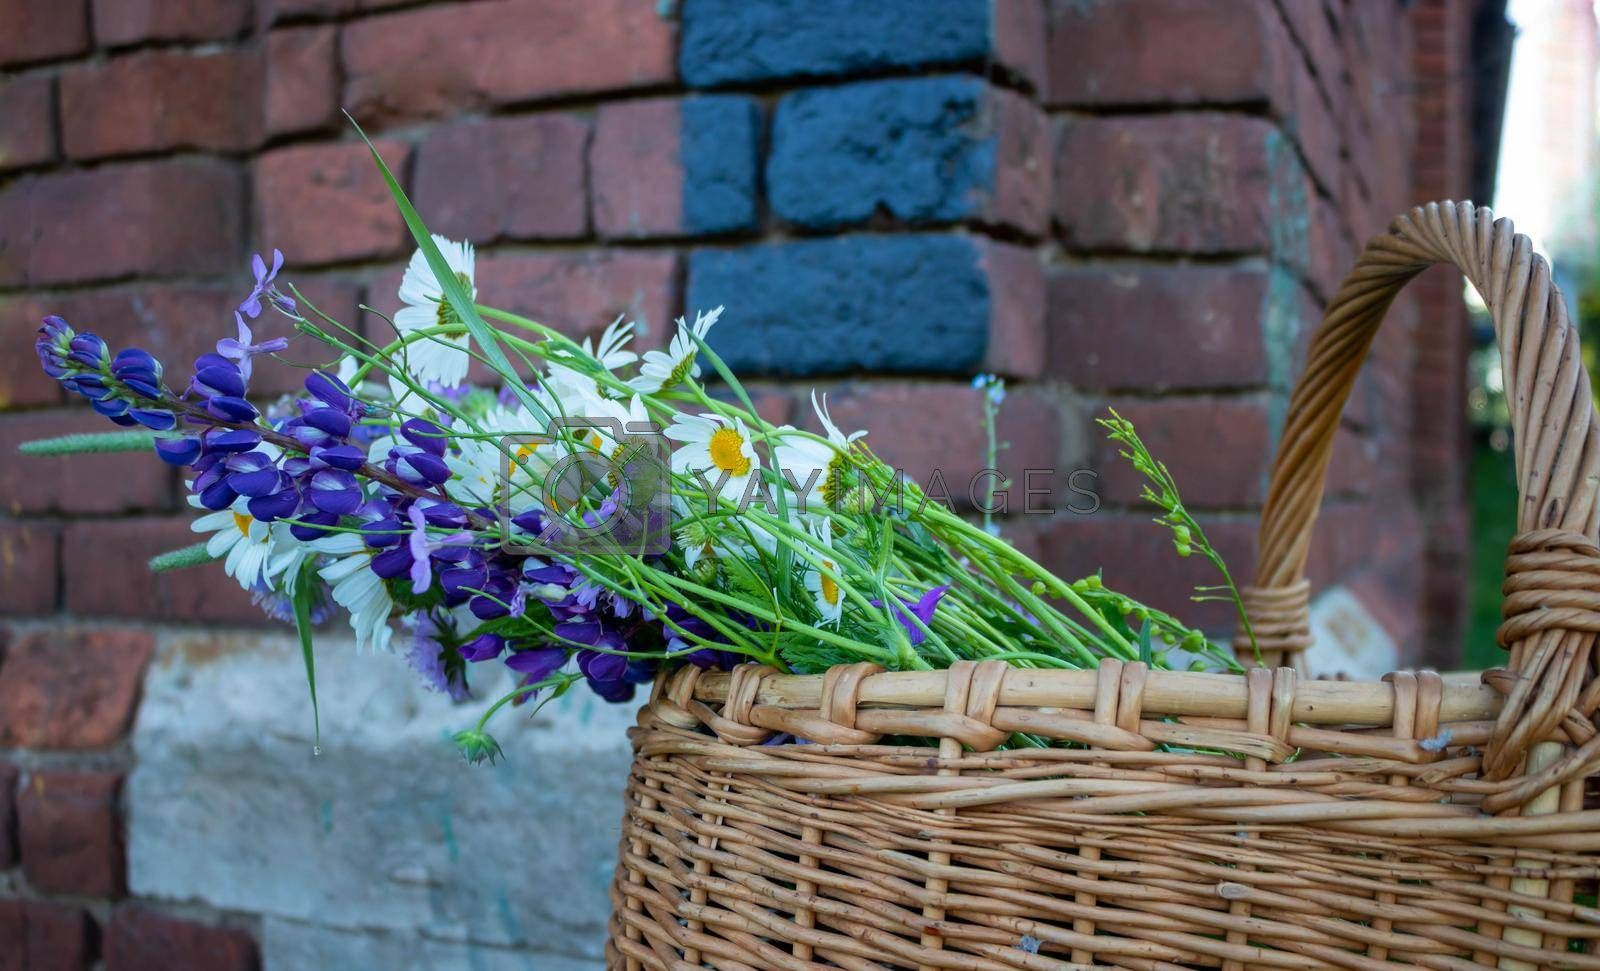 Beautiful bouquet of wildflowers in a basket, isolated against a brick wall background.